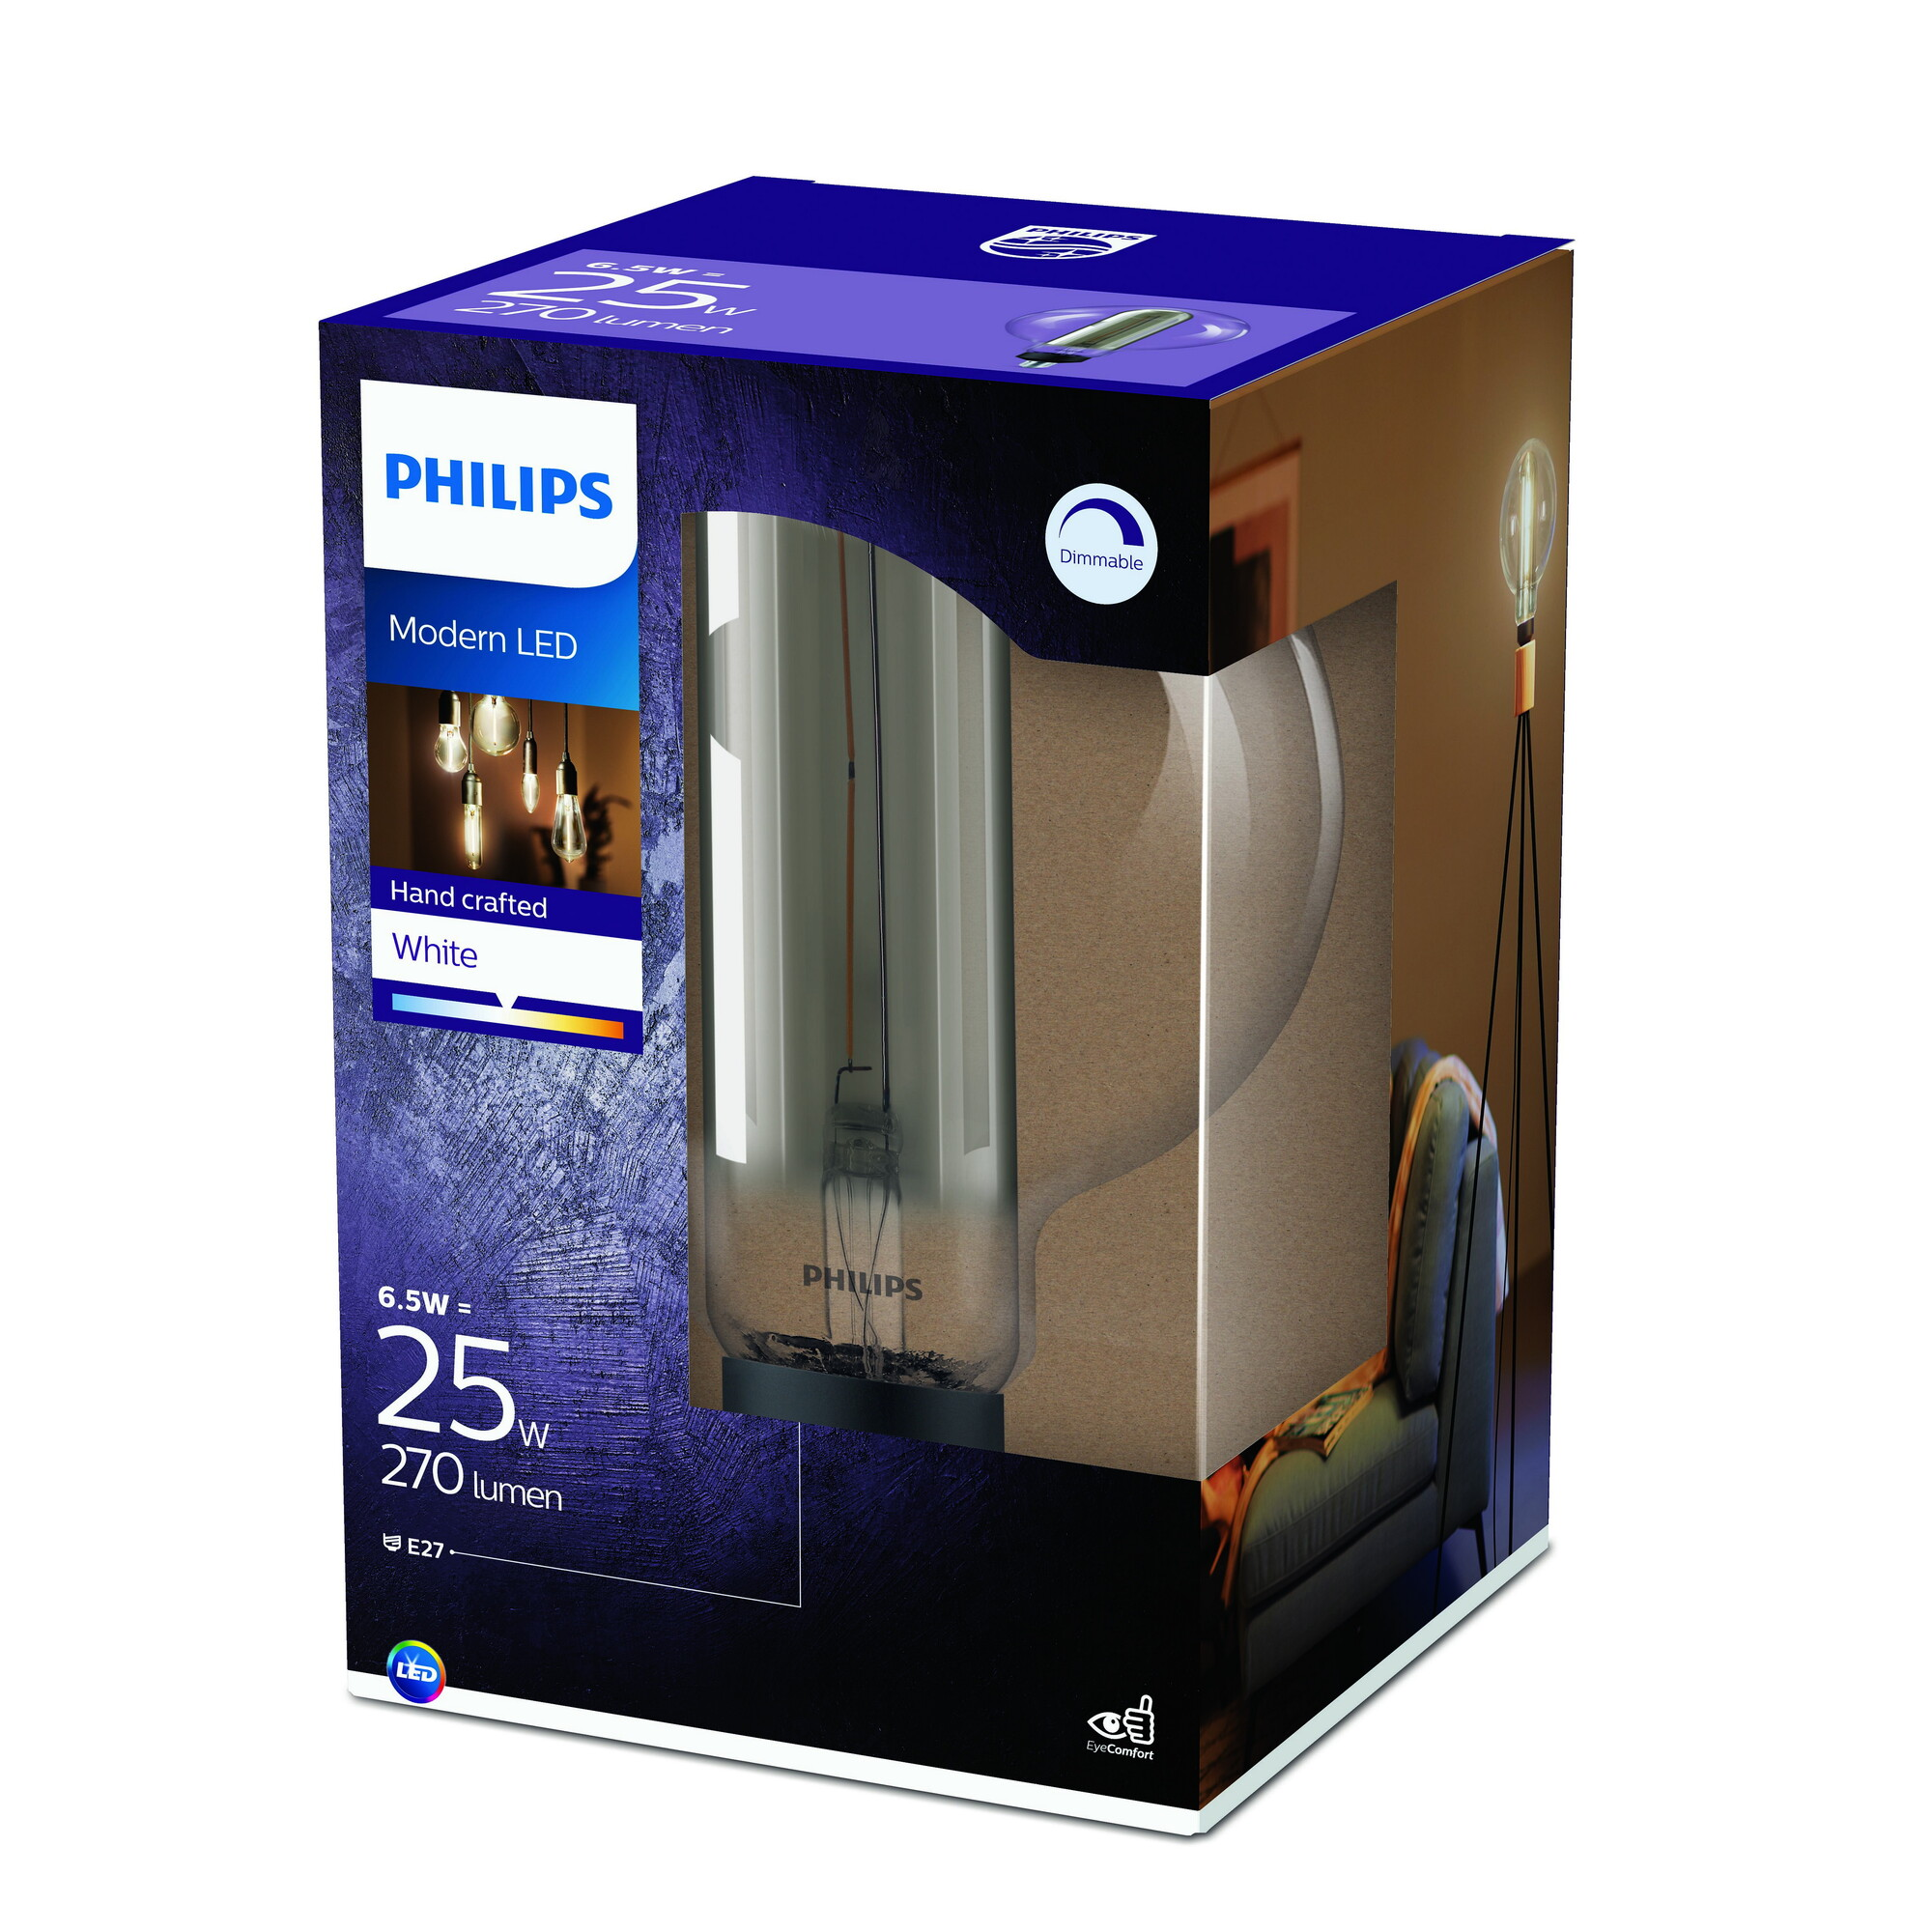 Philips LED E27 25W 270lm 3000K Gefumeerde coating